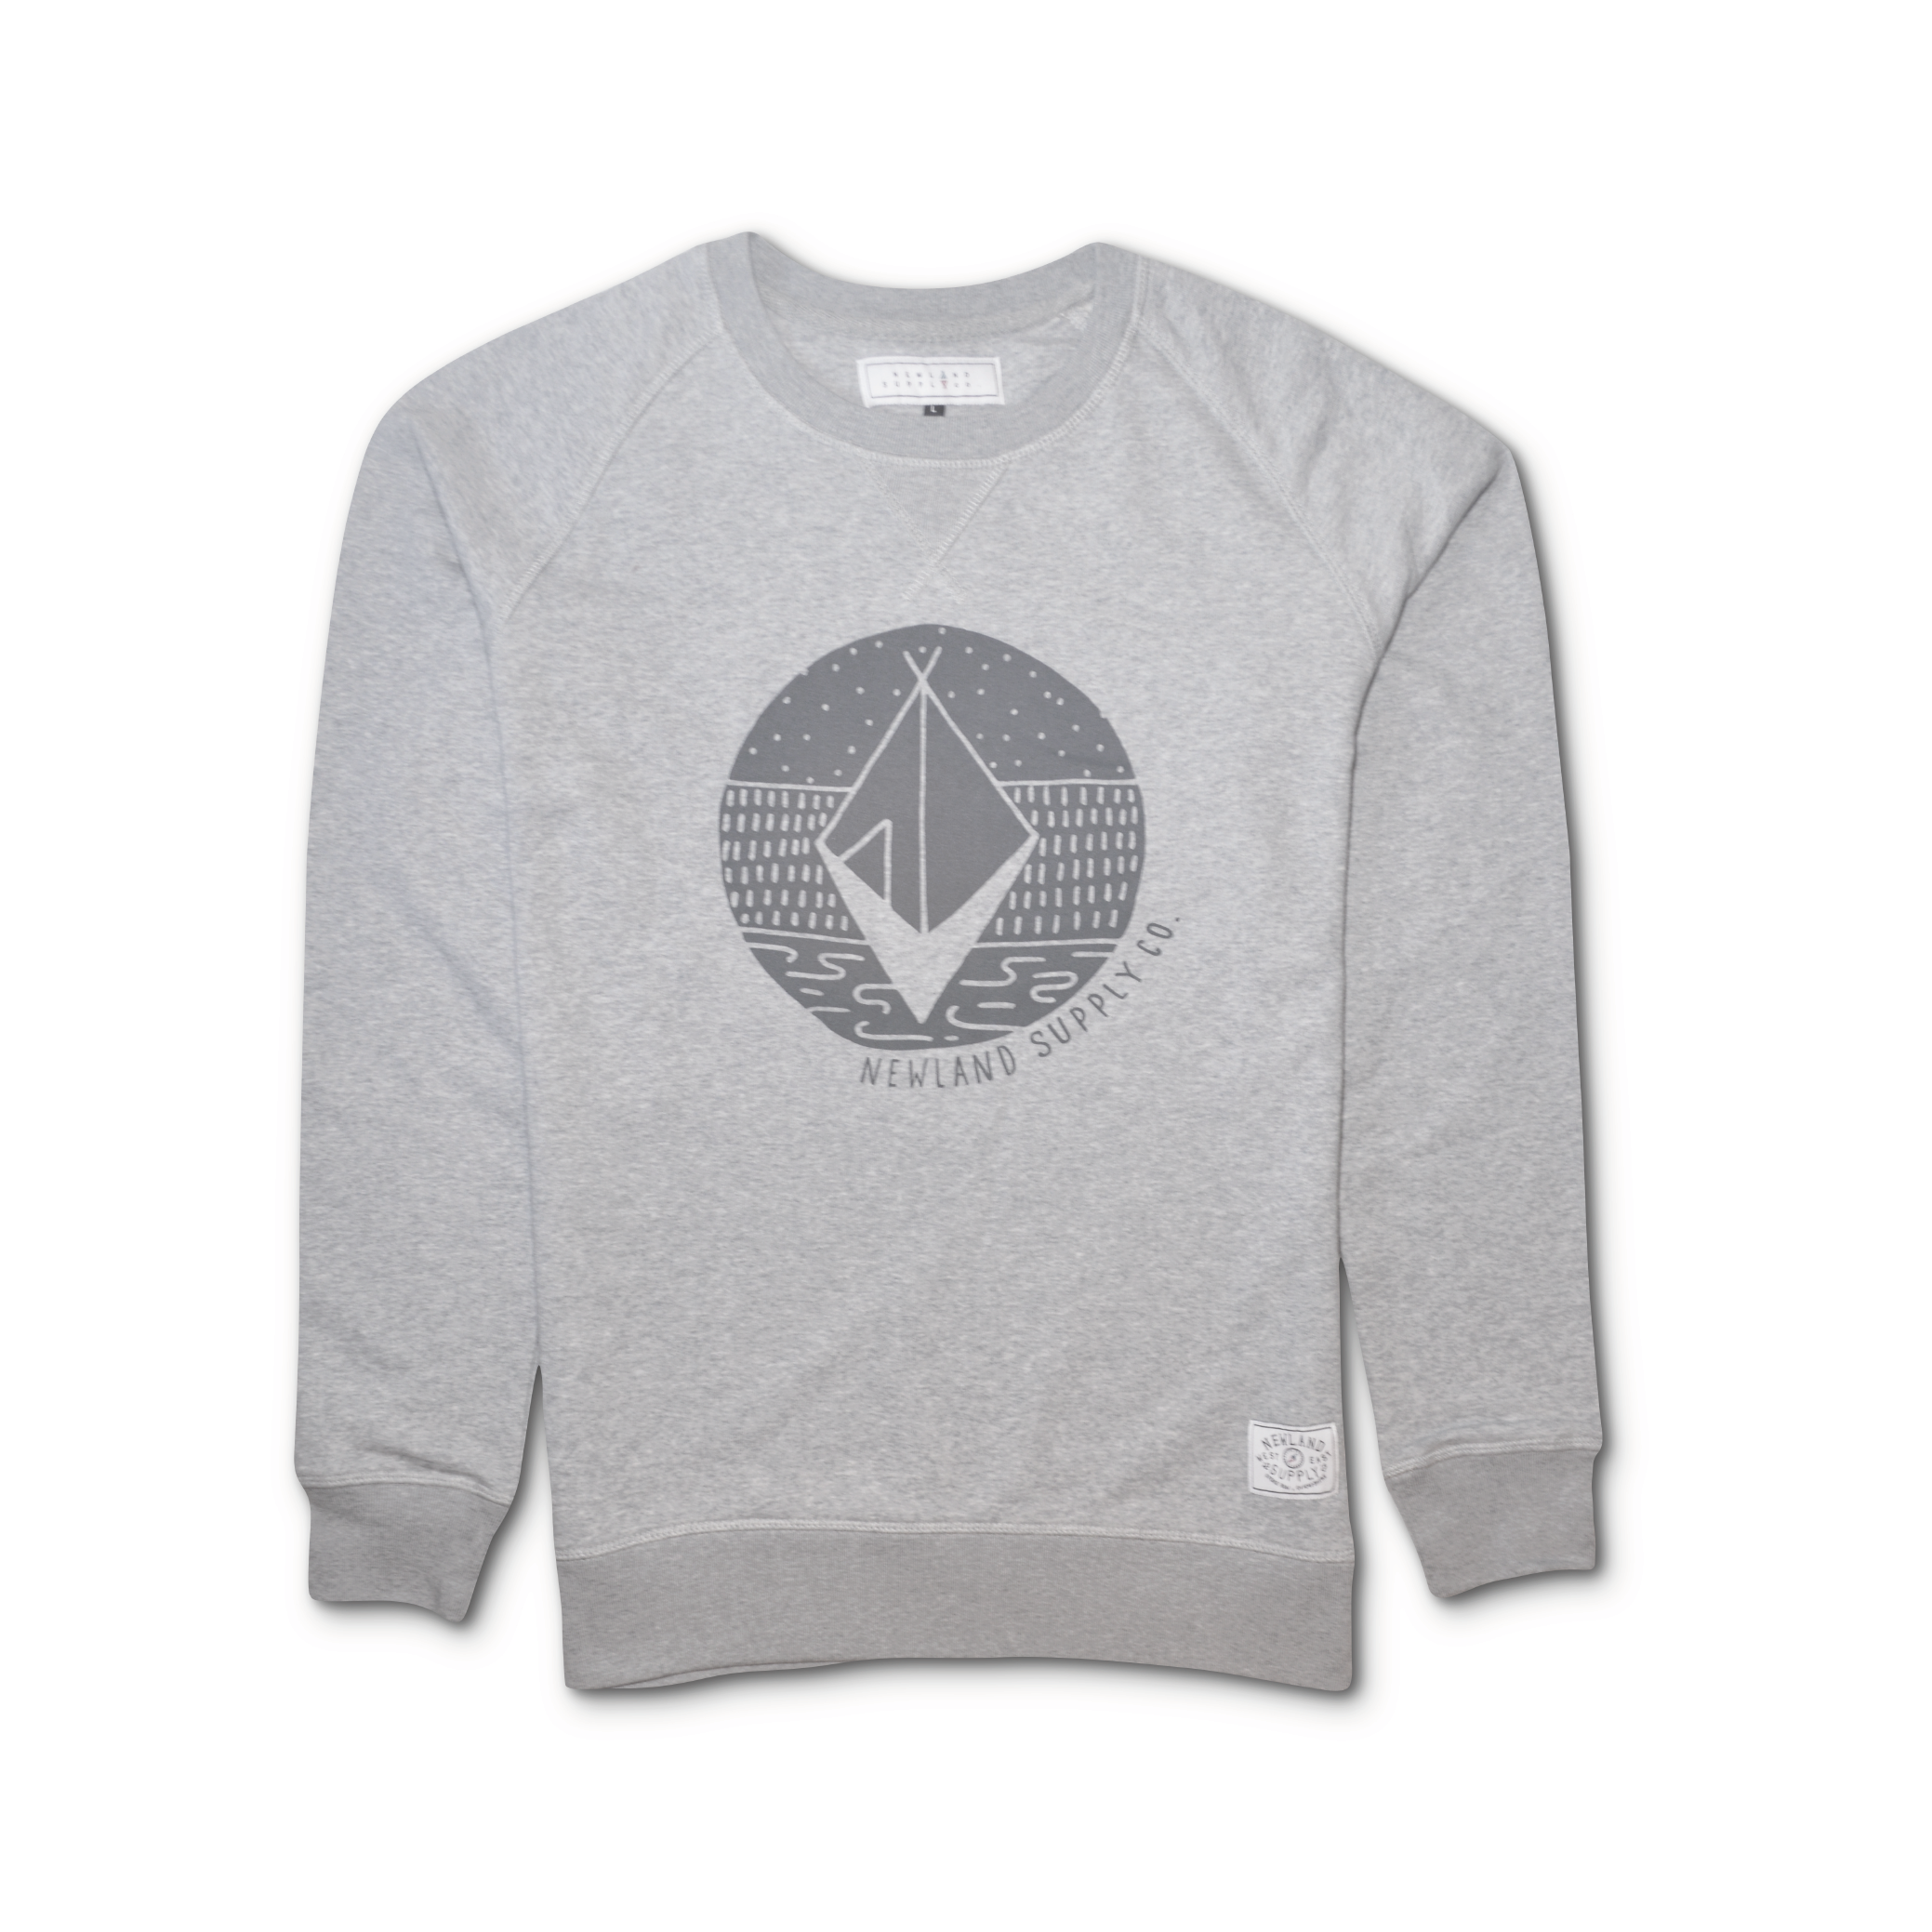 SANDERS SWEATSHIRT    By  Newland Supply Co.     Organic ring-spun cotton sweatshirt featuring the fine pen work of Matt Sanders.    SHOP NOW        On Sale - £30